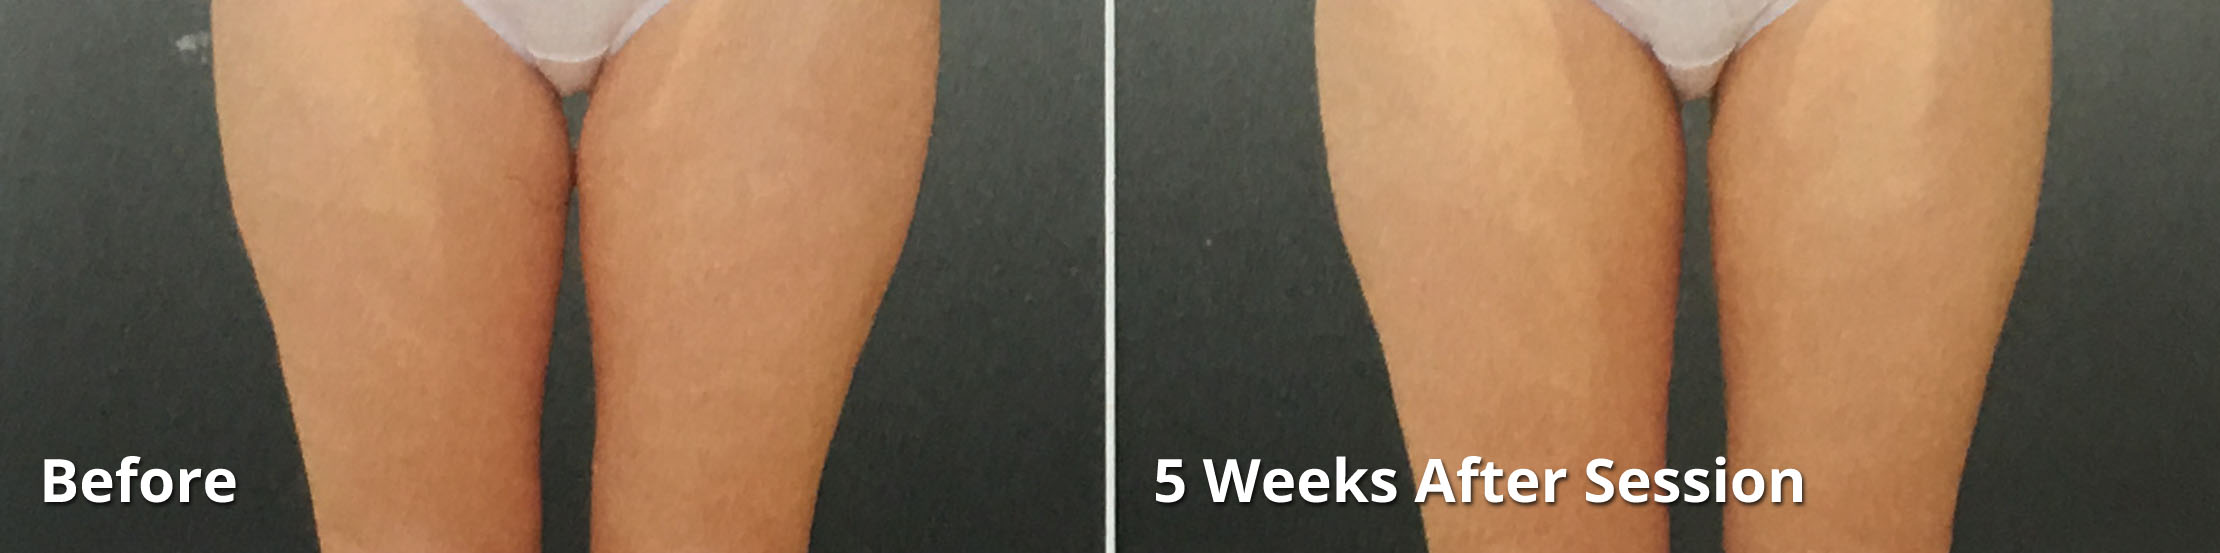 Coolsculpting - Before and After of thigh fat reduction